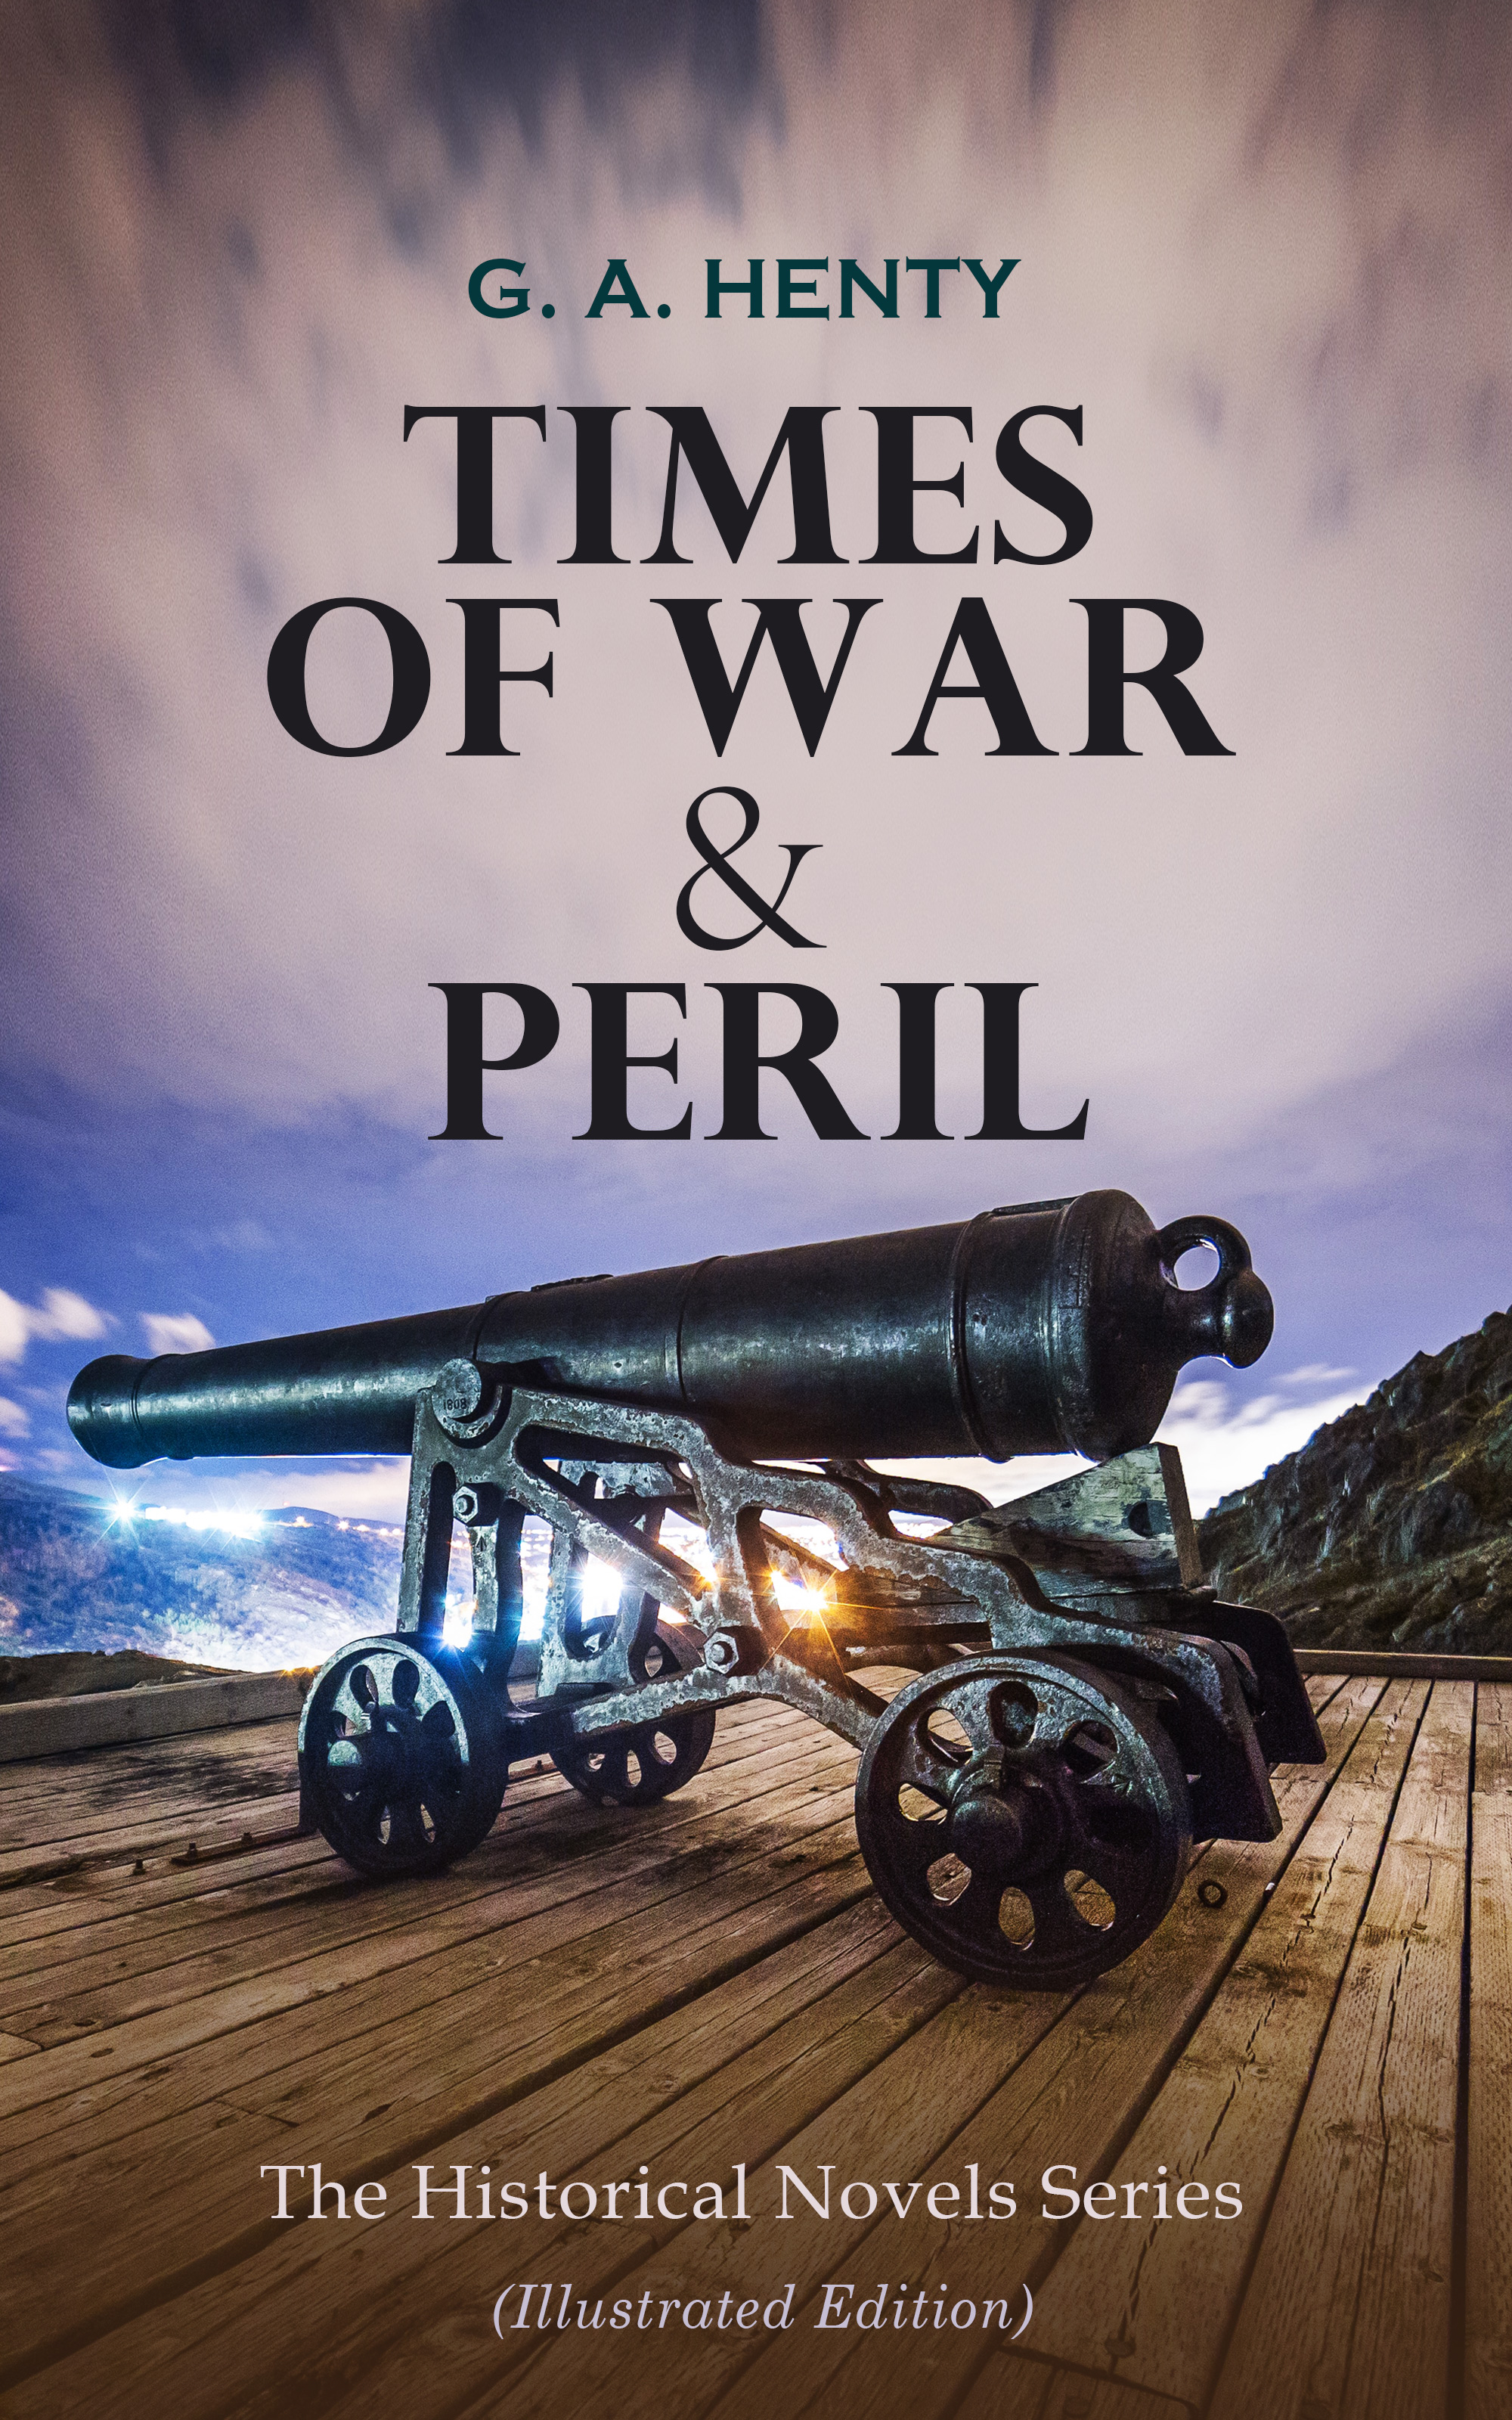 TIMES OF WAR & PERIL - The Historical Novels Series (Illustrated Edition) ( G. A.  Henty  )